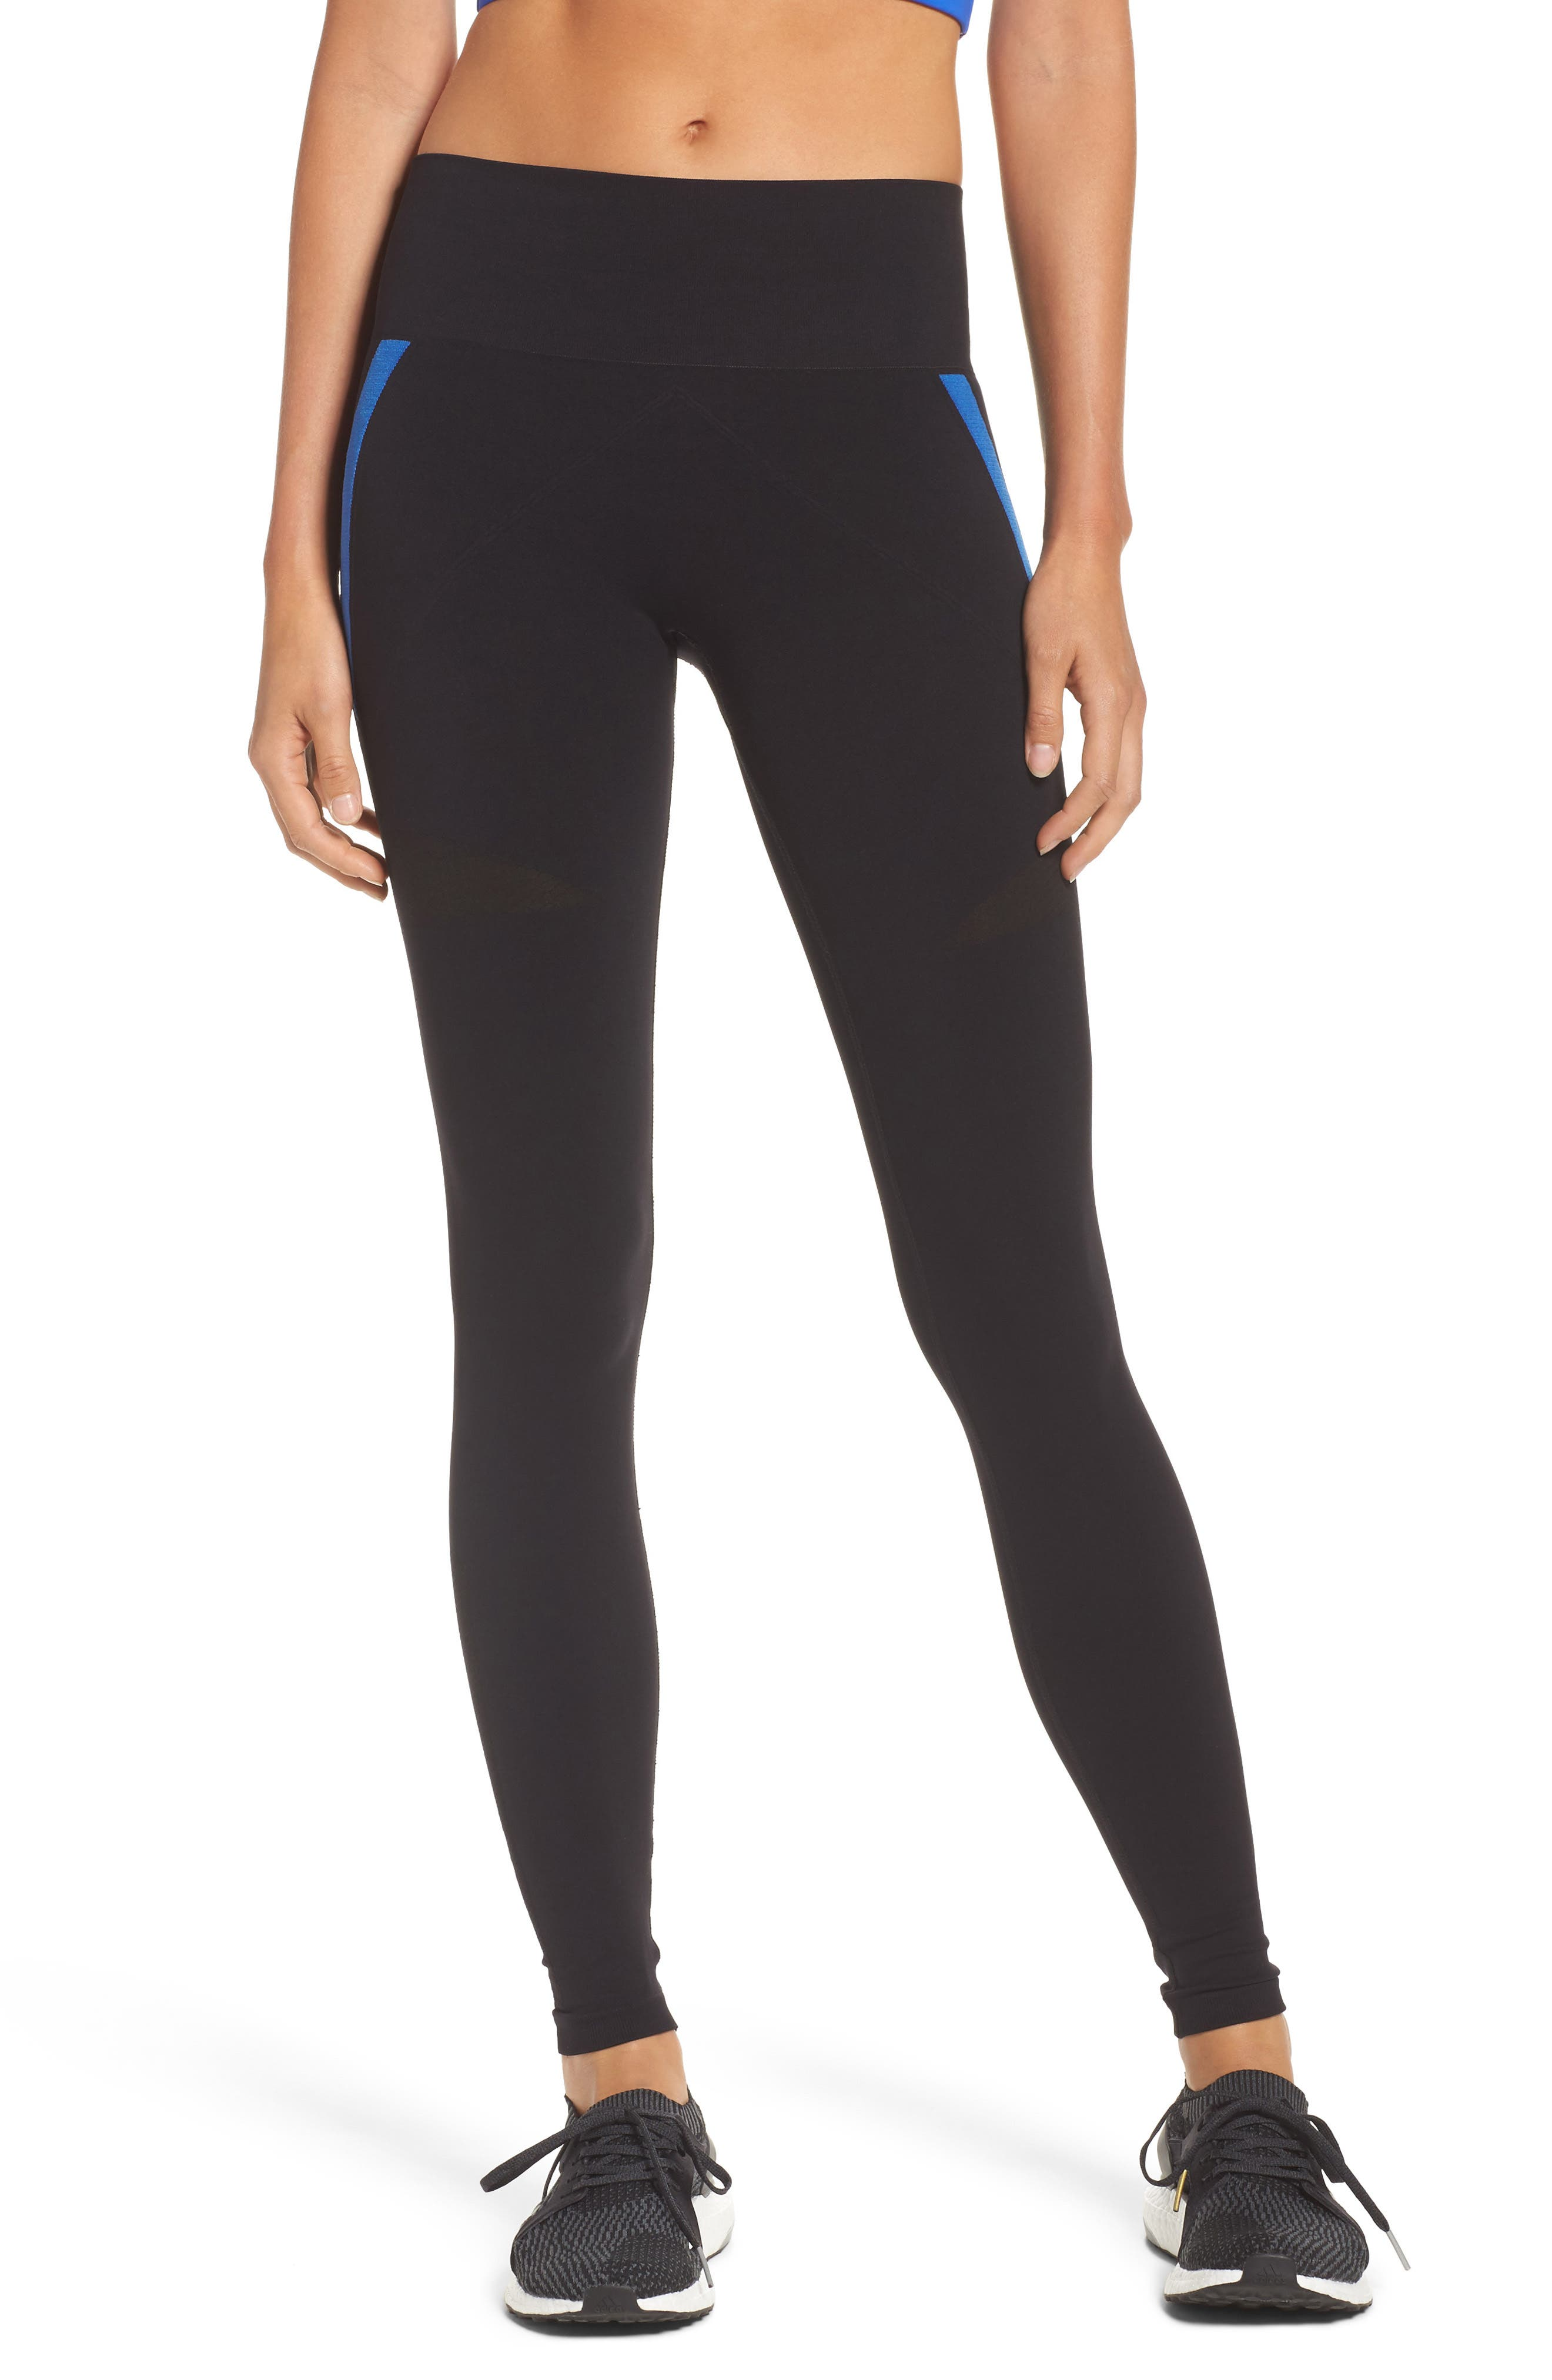 BoomBoom Athletica Leggings,                             Main thumbnail 1, color,                             Black With Blue